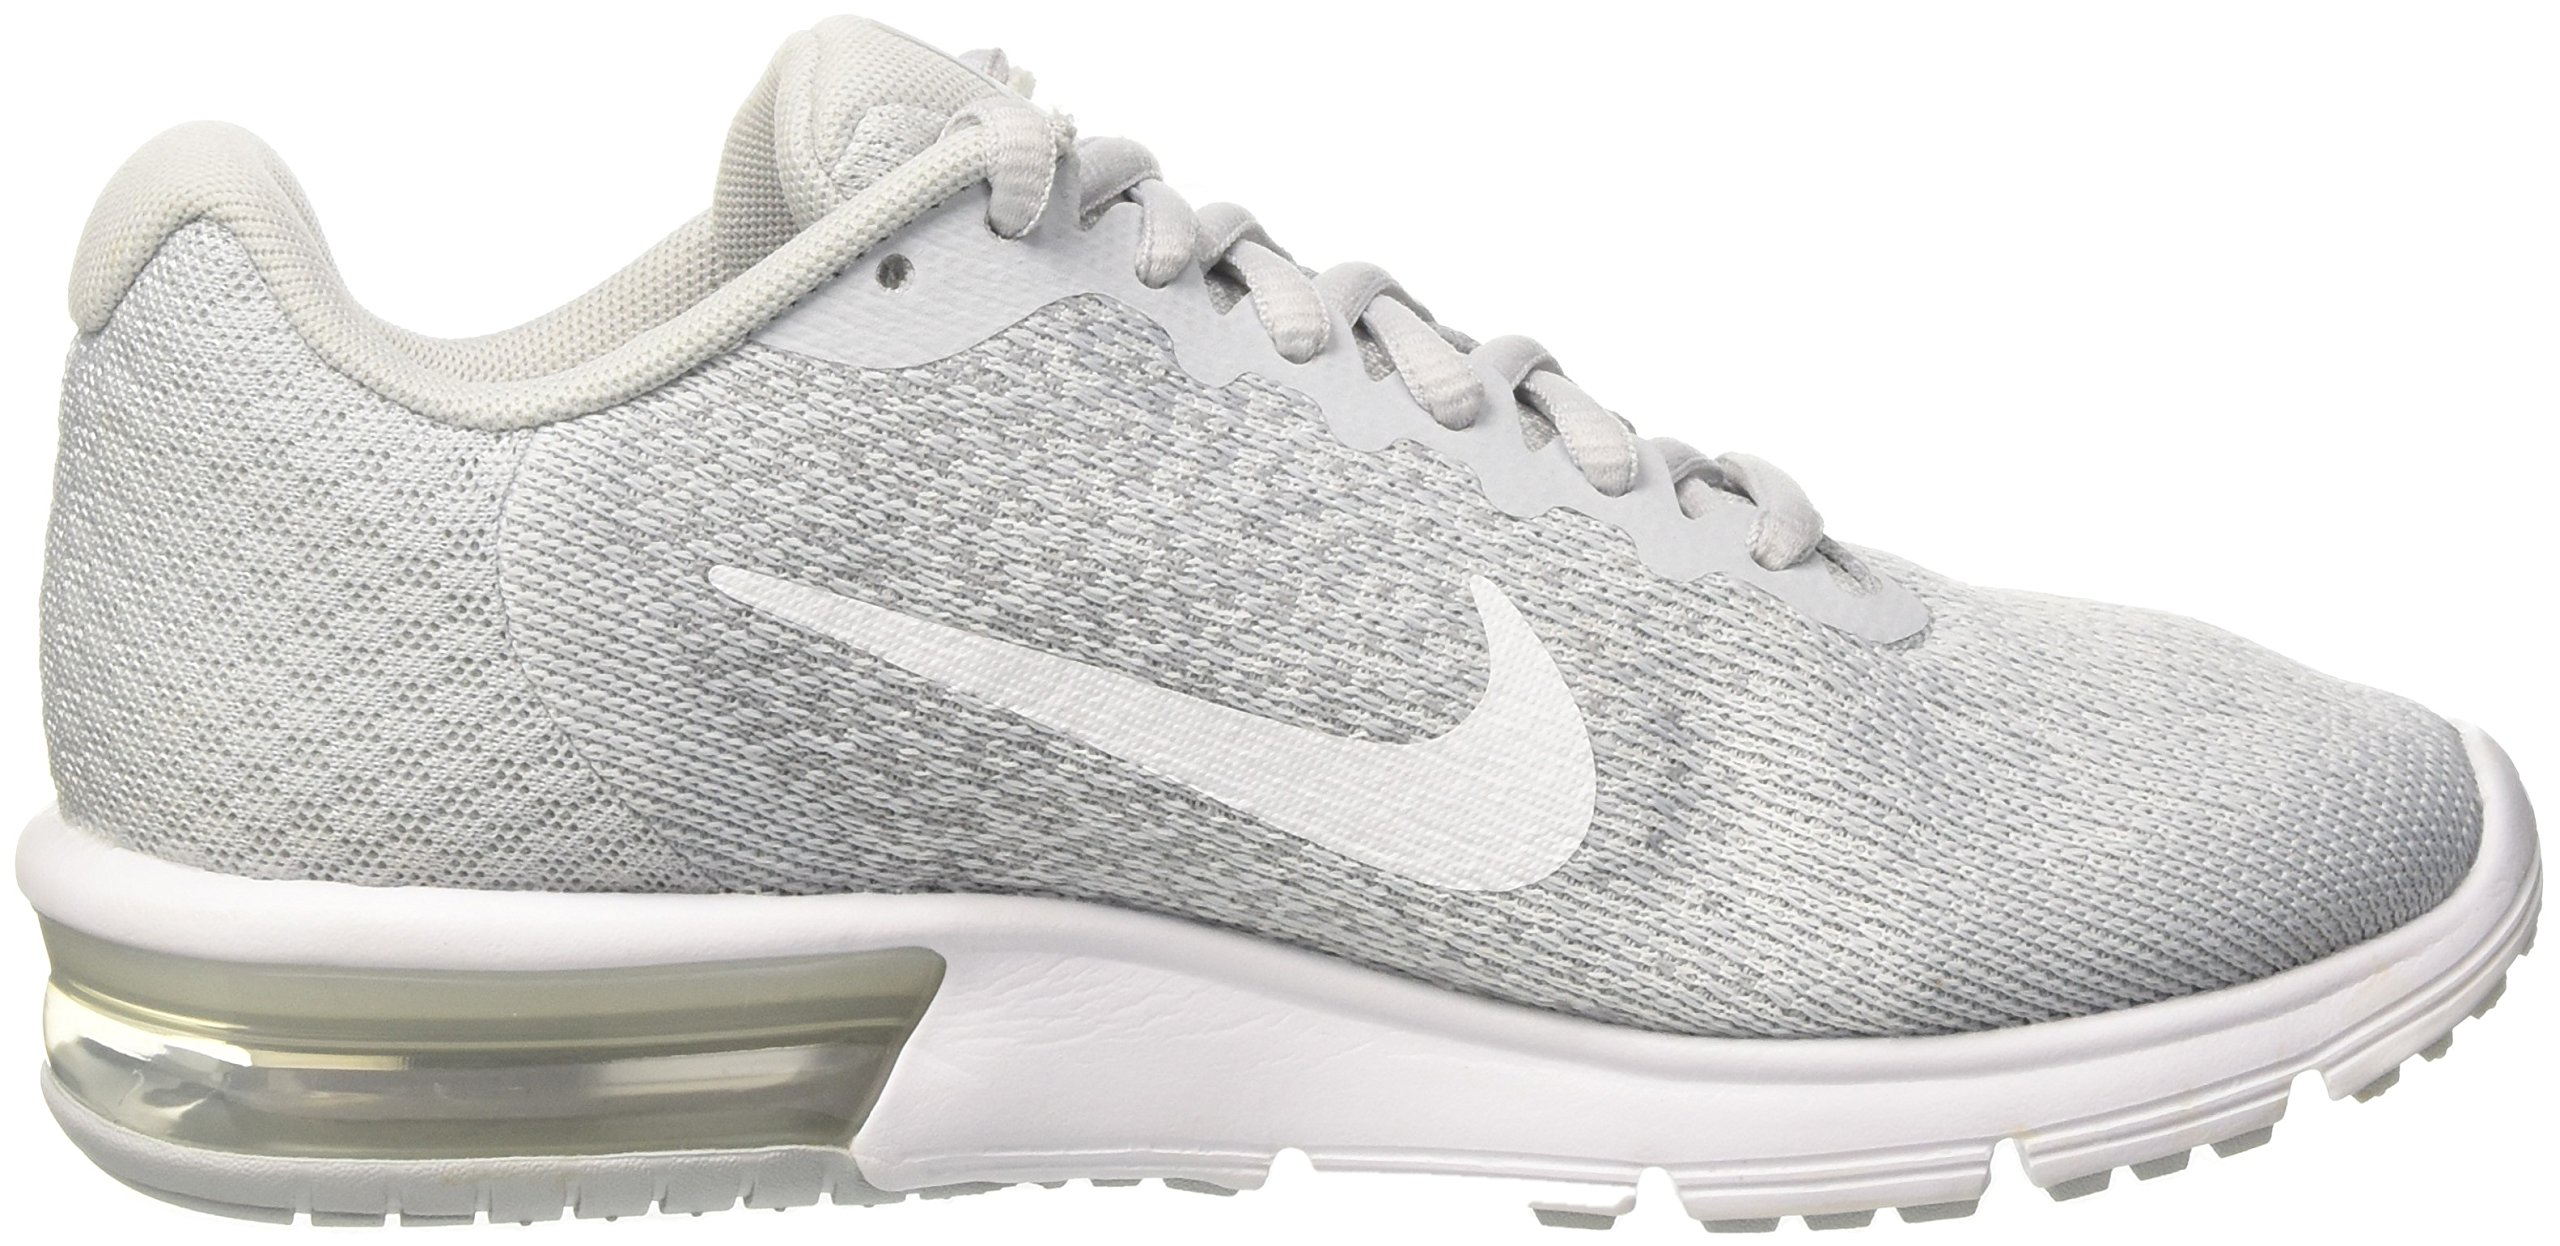 NIKE Womens Air max Sequent 2 Low Top Lace Up Running Sneaker, Silver, Size 10.0 by NIKE (Image #5)